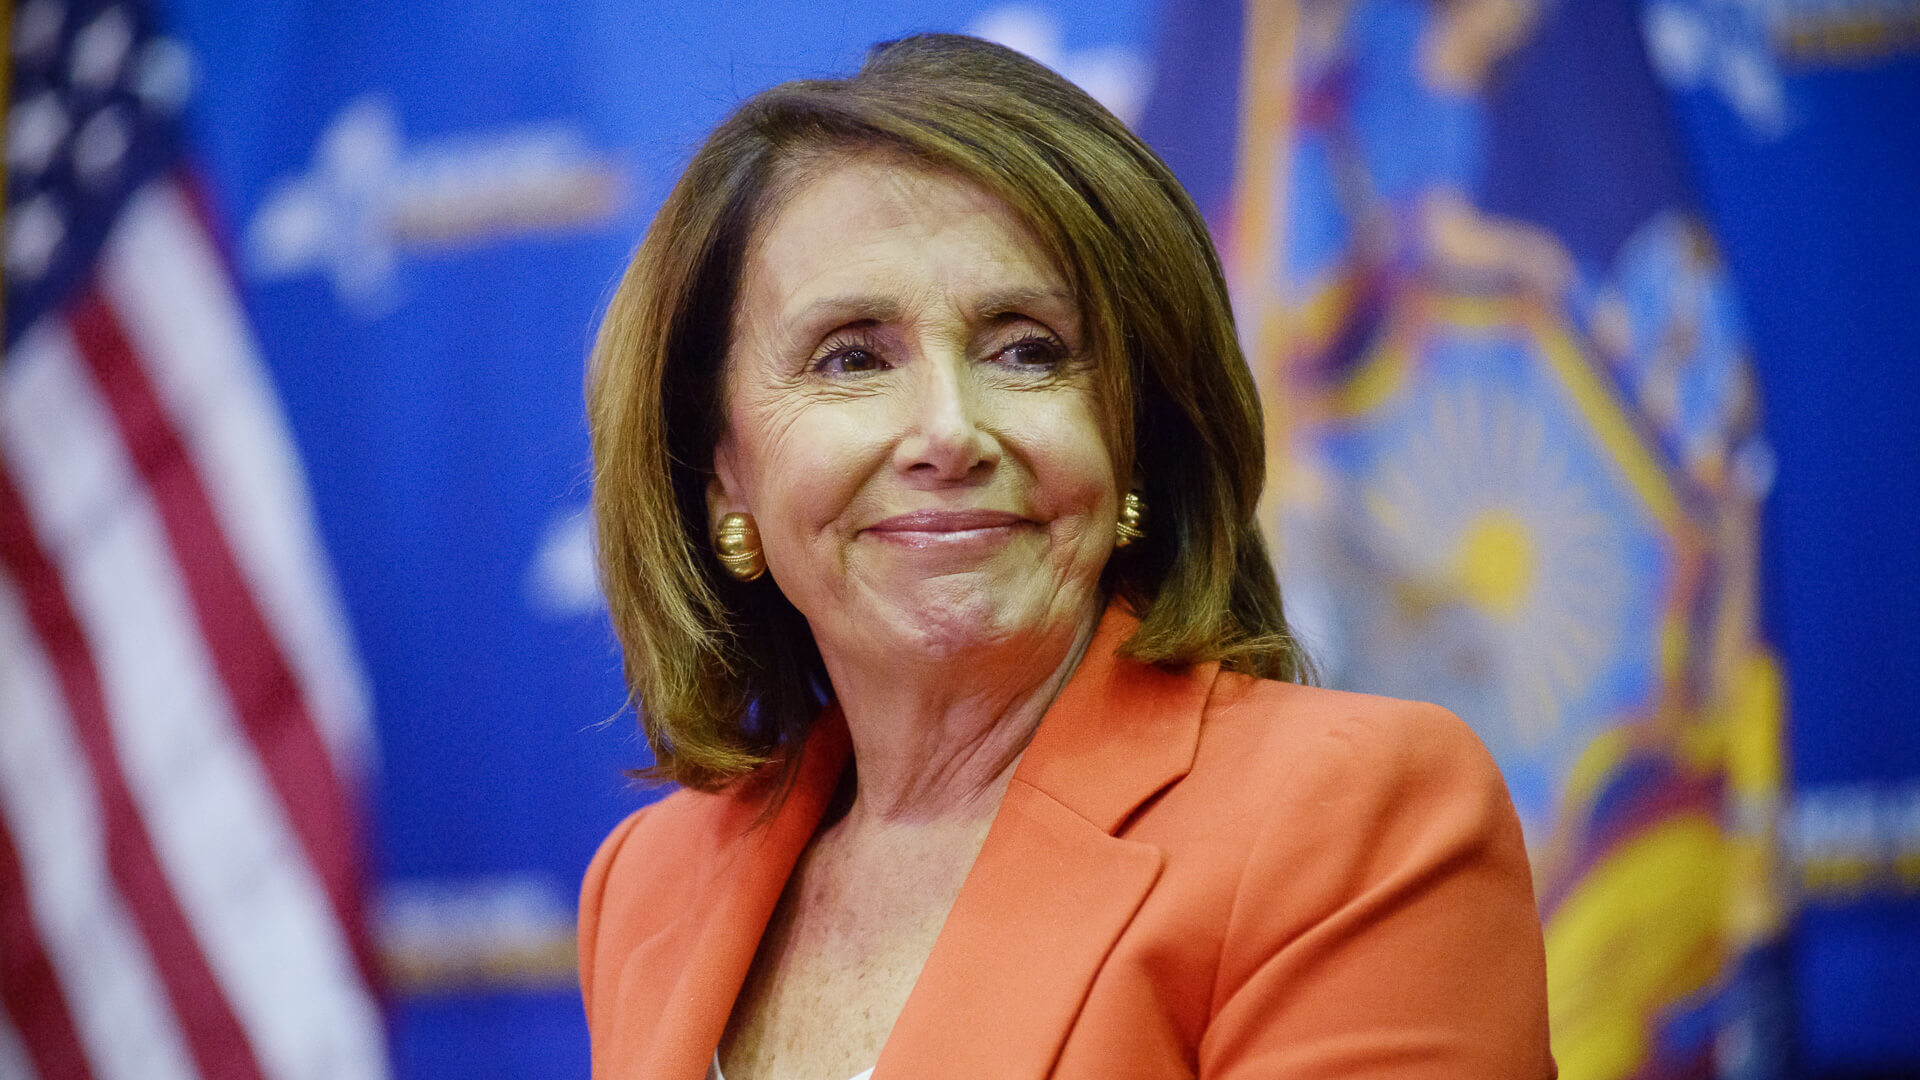 Nancy Pelosi Family 2020, Biography, and Current Net Worth Updates